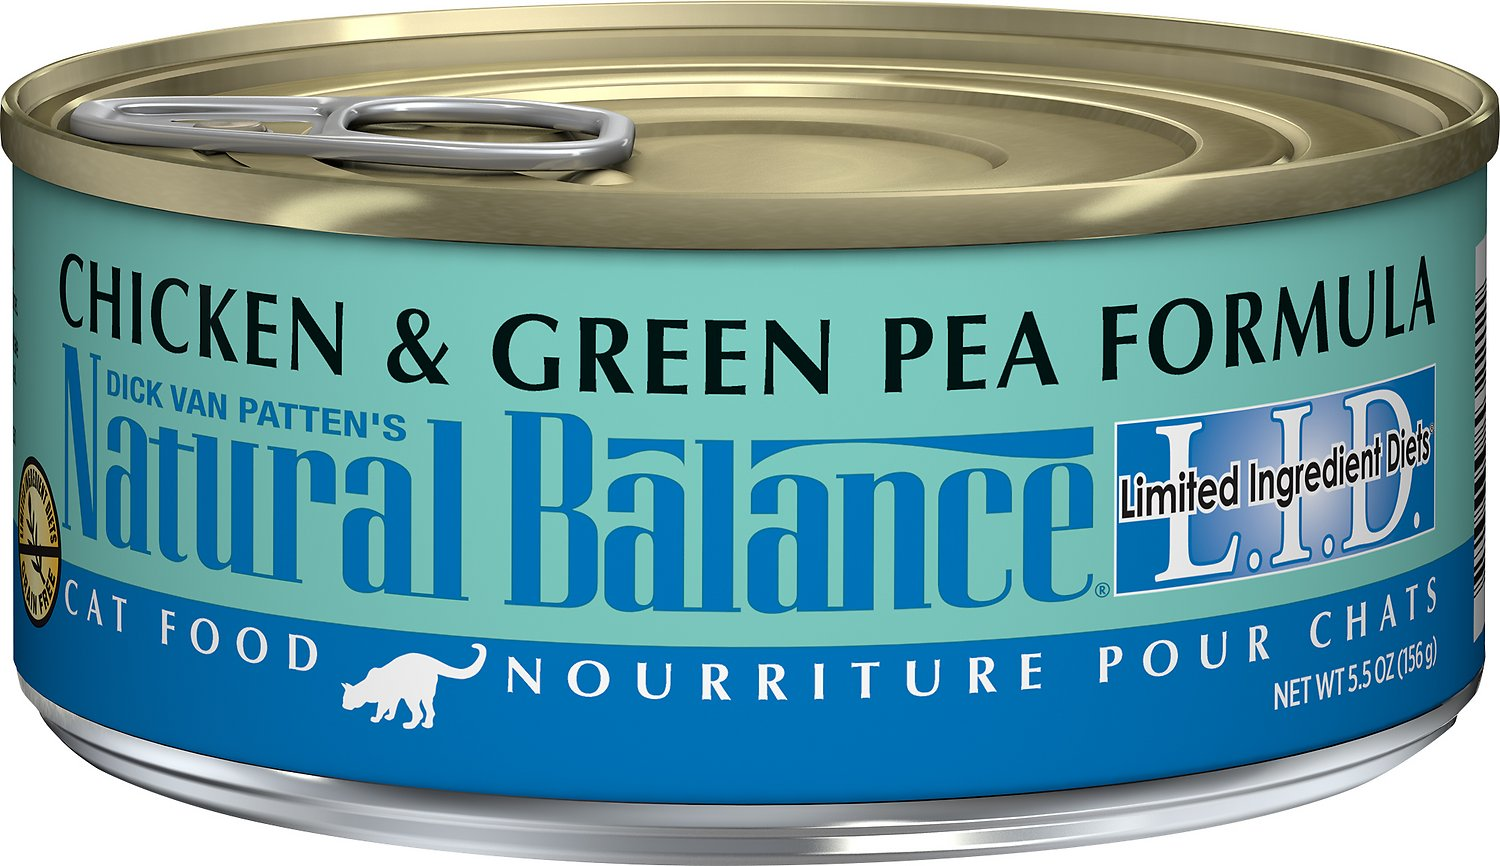 Natural Balance L.I.D. Limited Ingredient Diets Chicken & Green Pea Formula Grain-Free Canned Cat Food, 5.5-oz